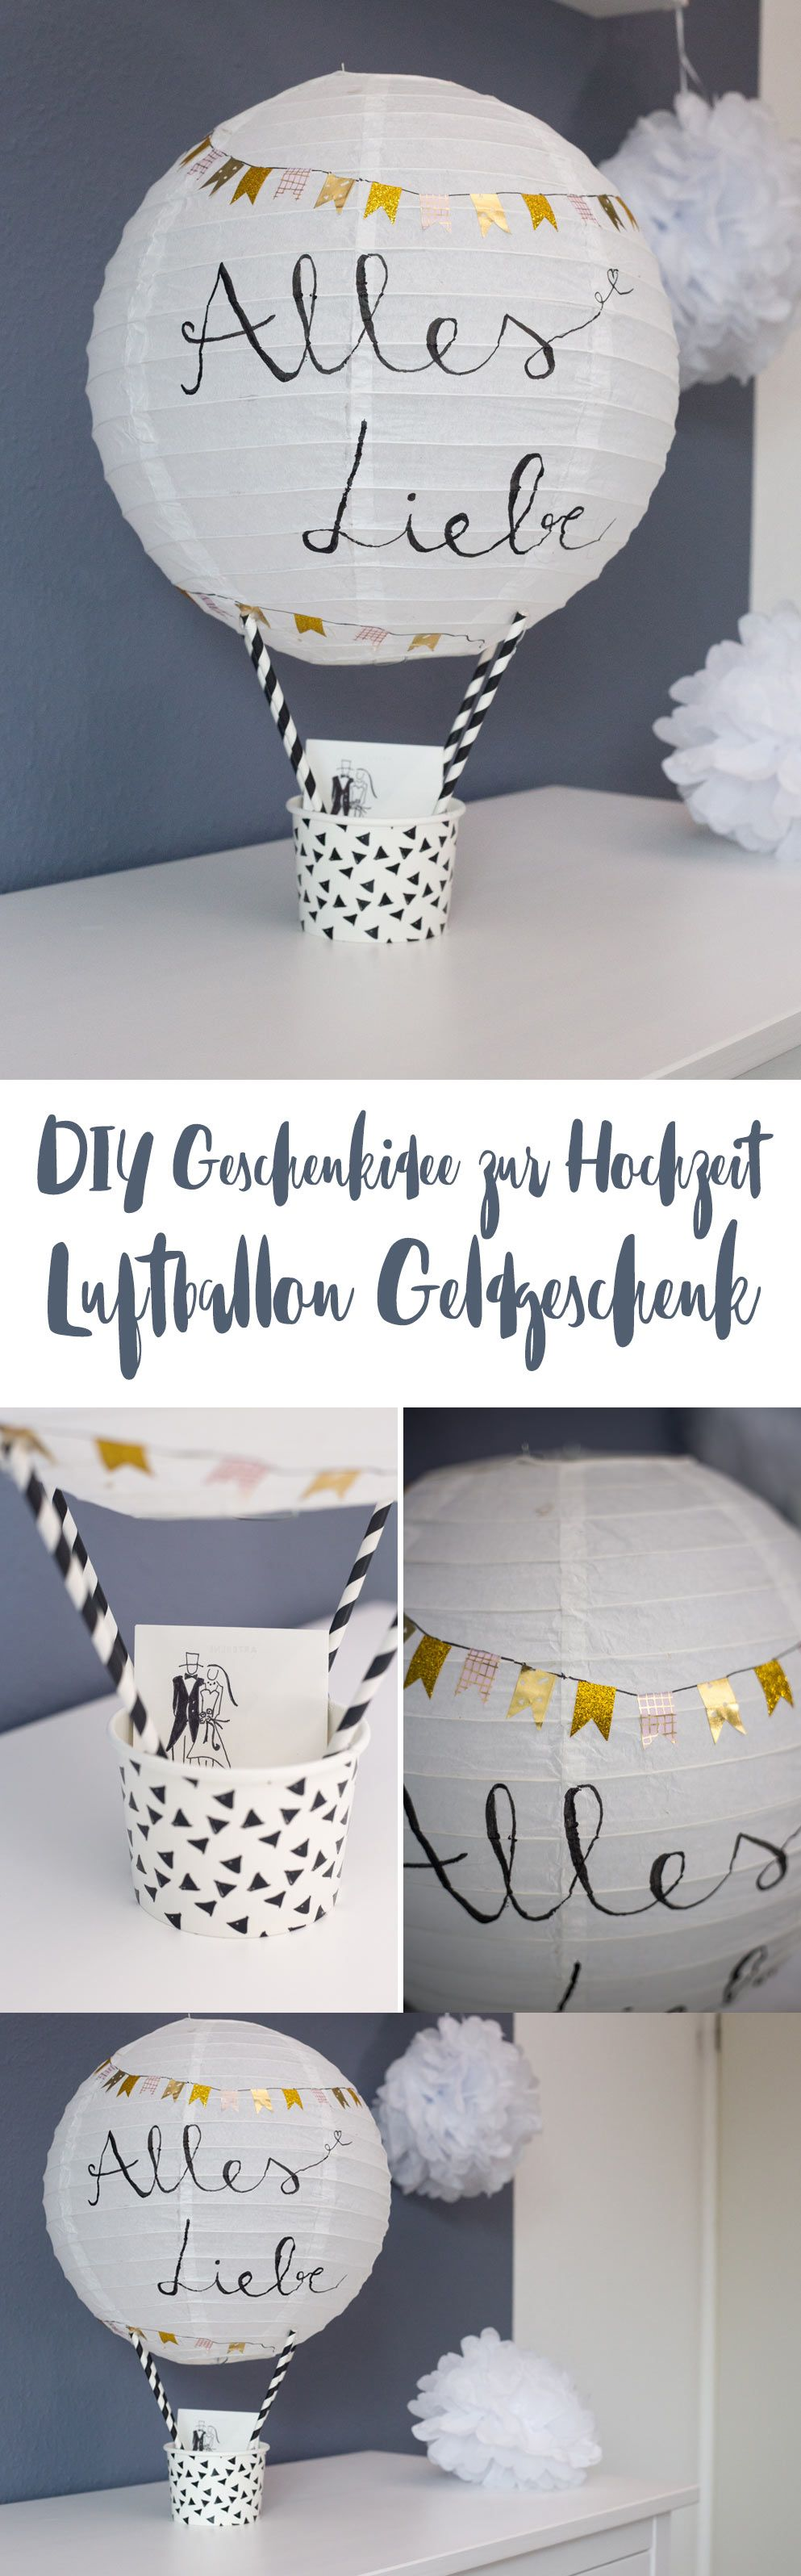 diy geschenkidee zur hochzeit hei luftballon geldgeschenk basteln diy deco pinterest. Black Bedroom Furniture Sets. Home Design Ideas